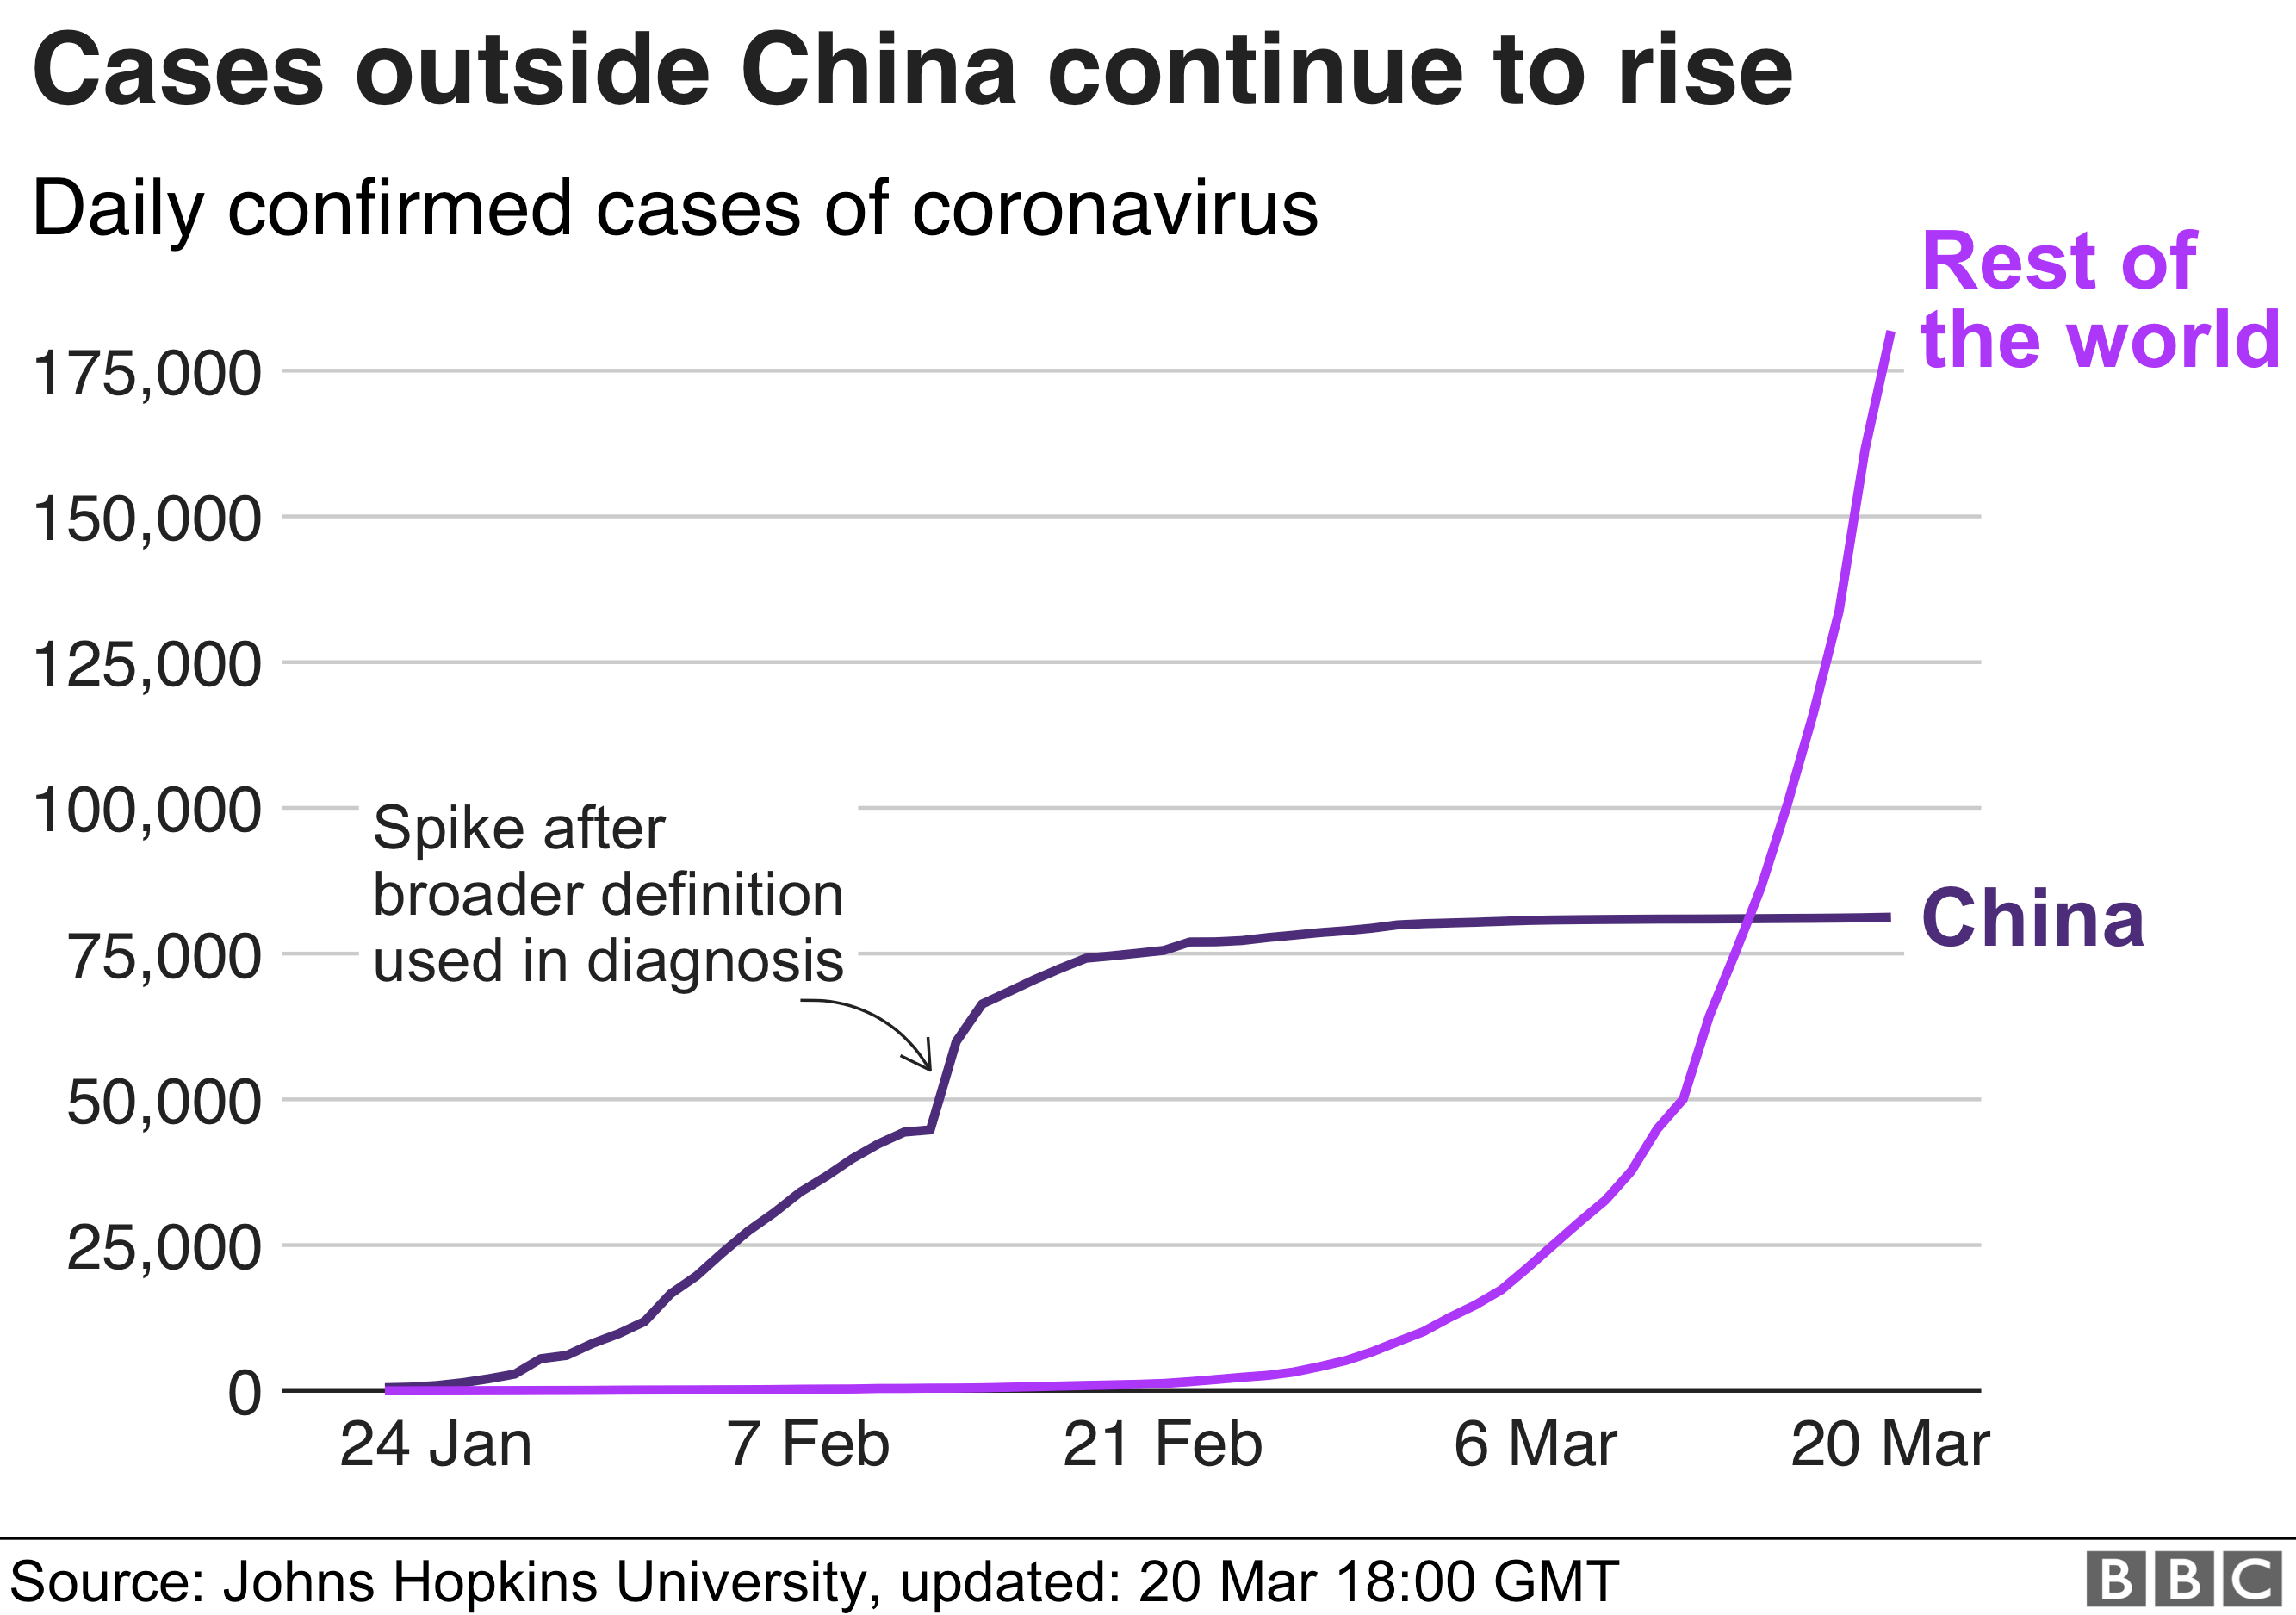 Cases outside of China have continued to rise. Now over 175,000